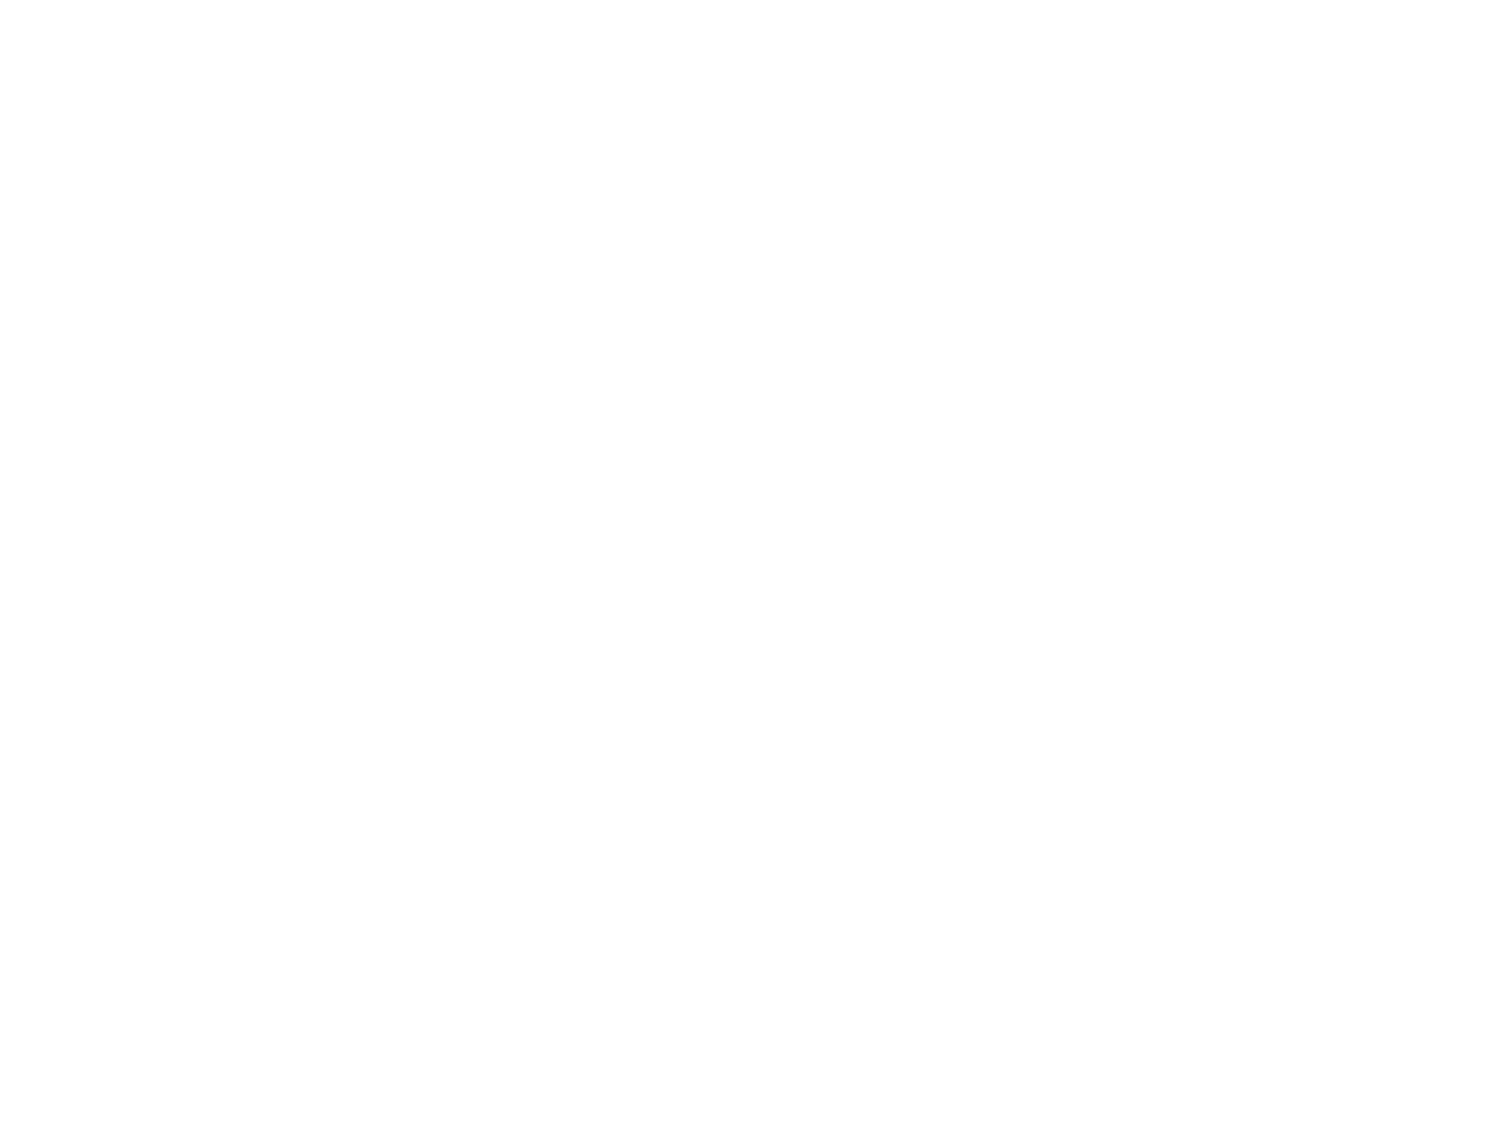 ONE GOD UNITED